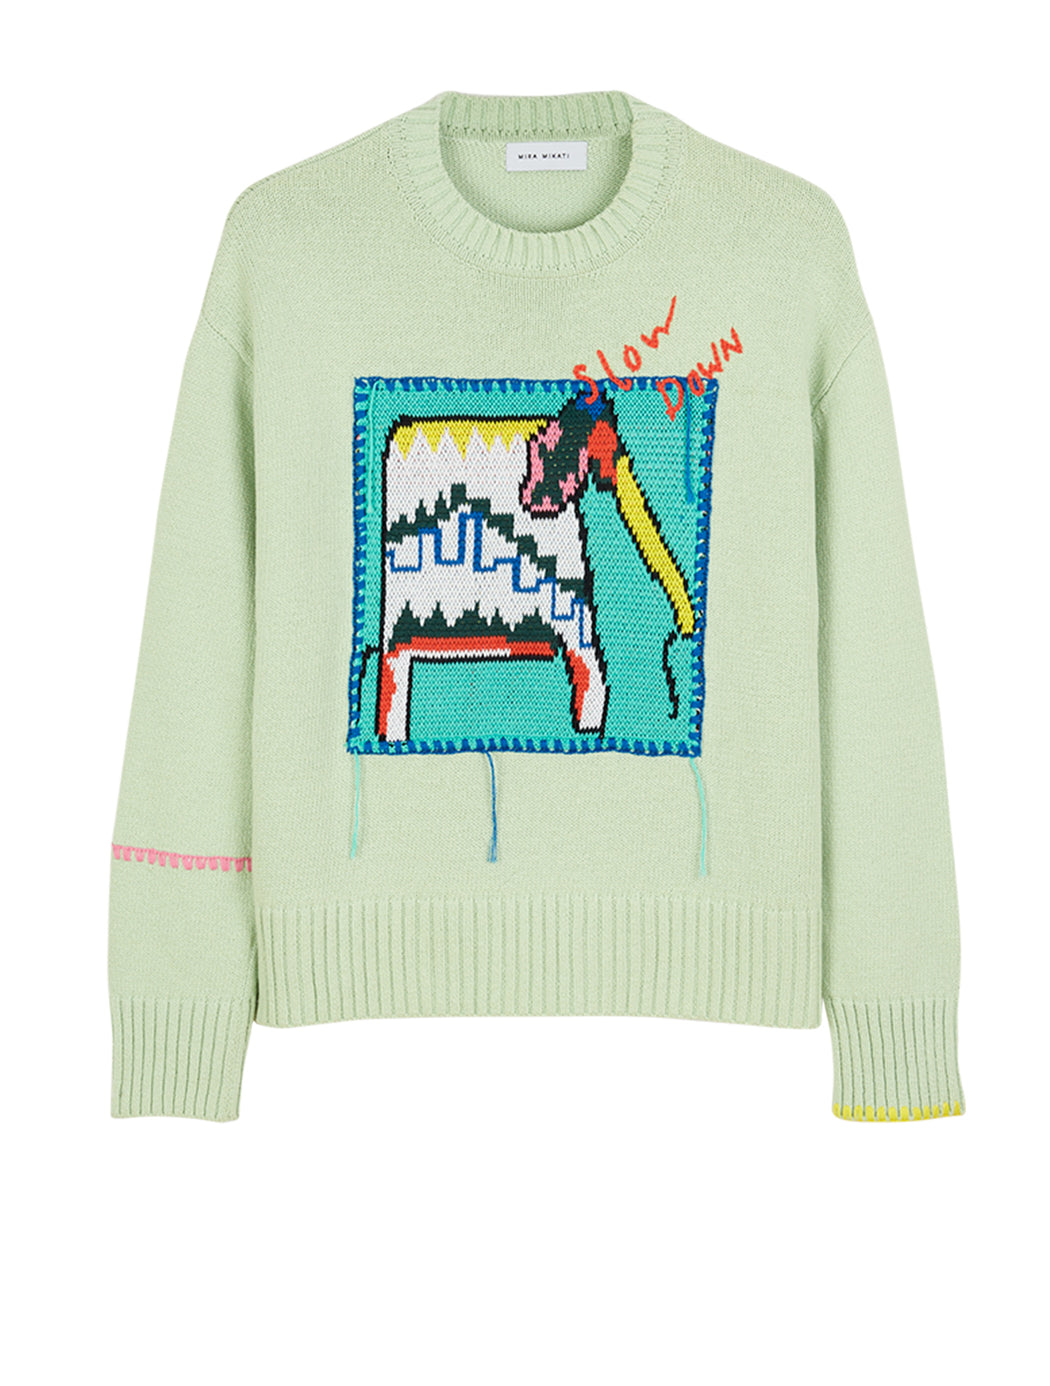 Elephant Patch Knit Sweater